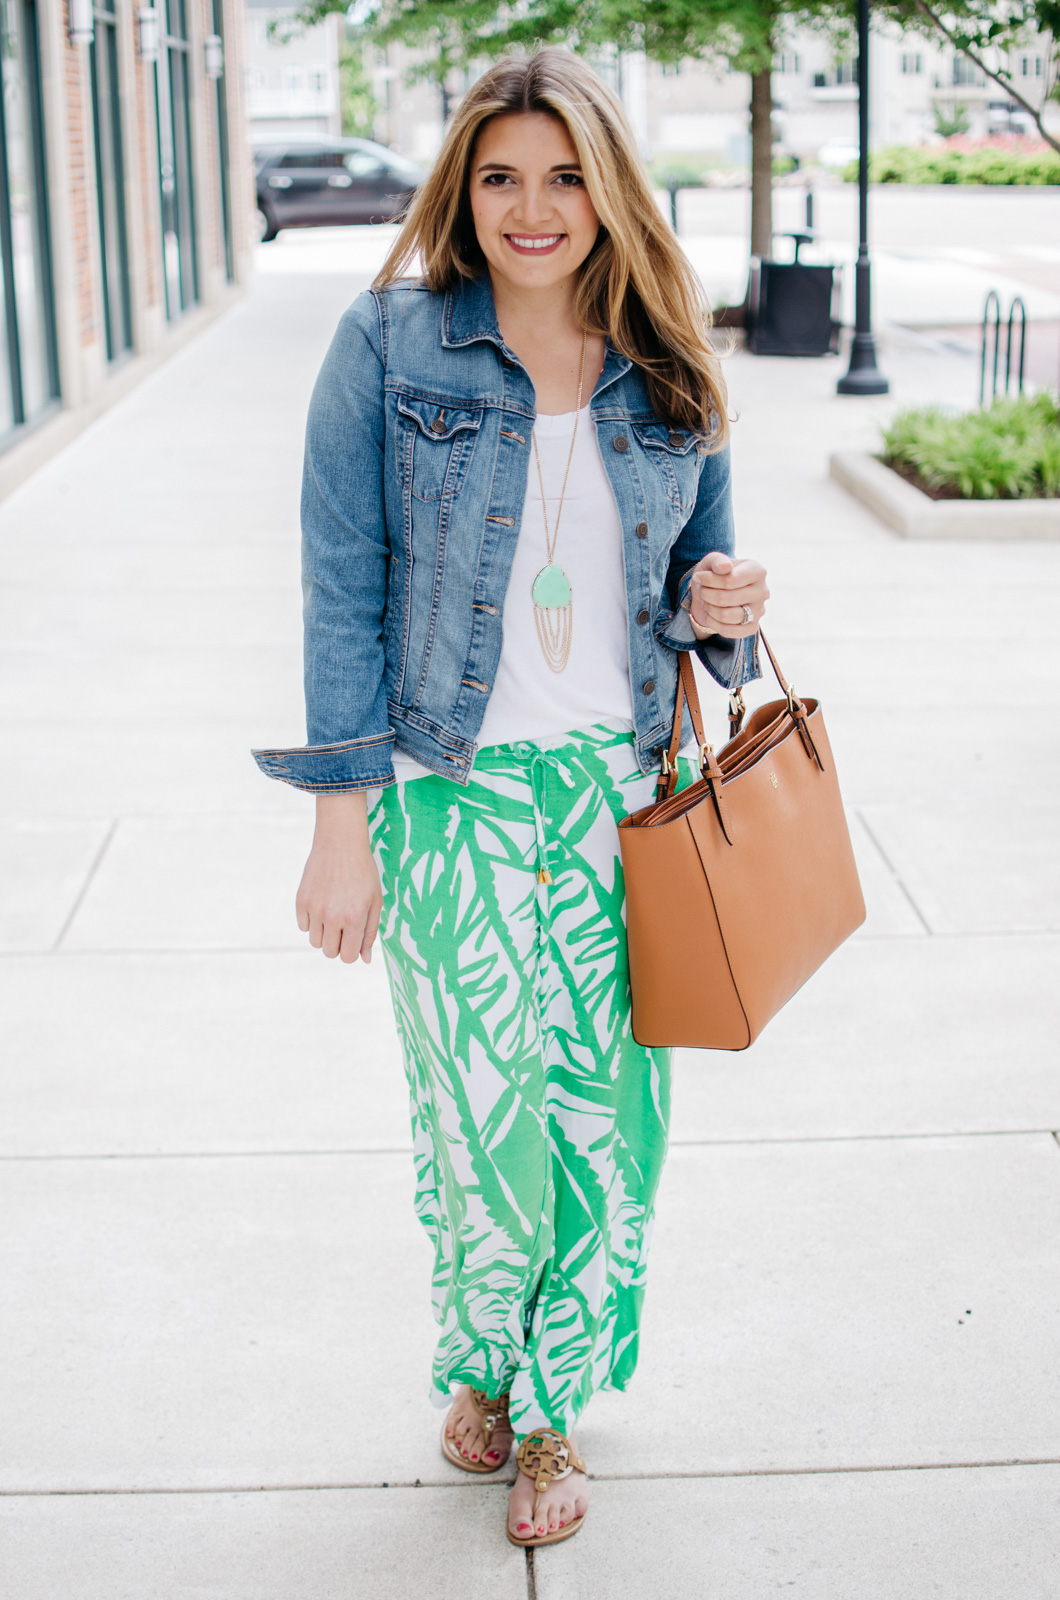 printed pants spring outfit - lilly pulitzer outfits | For more Spring and Summer outfits, head to bylaurenm.com!